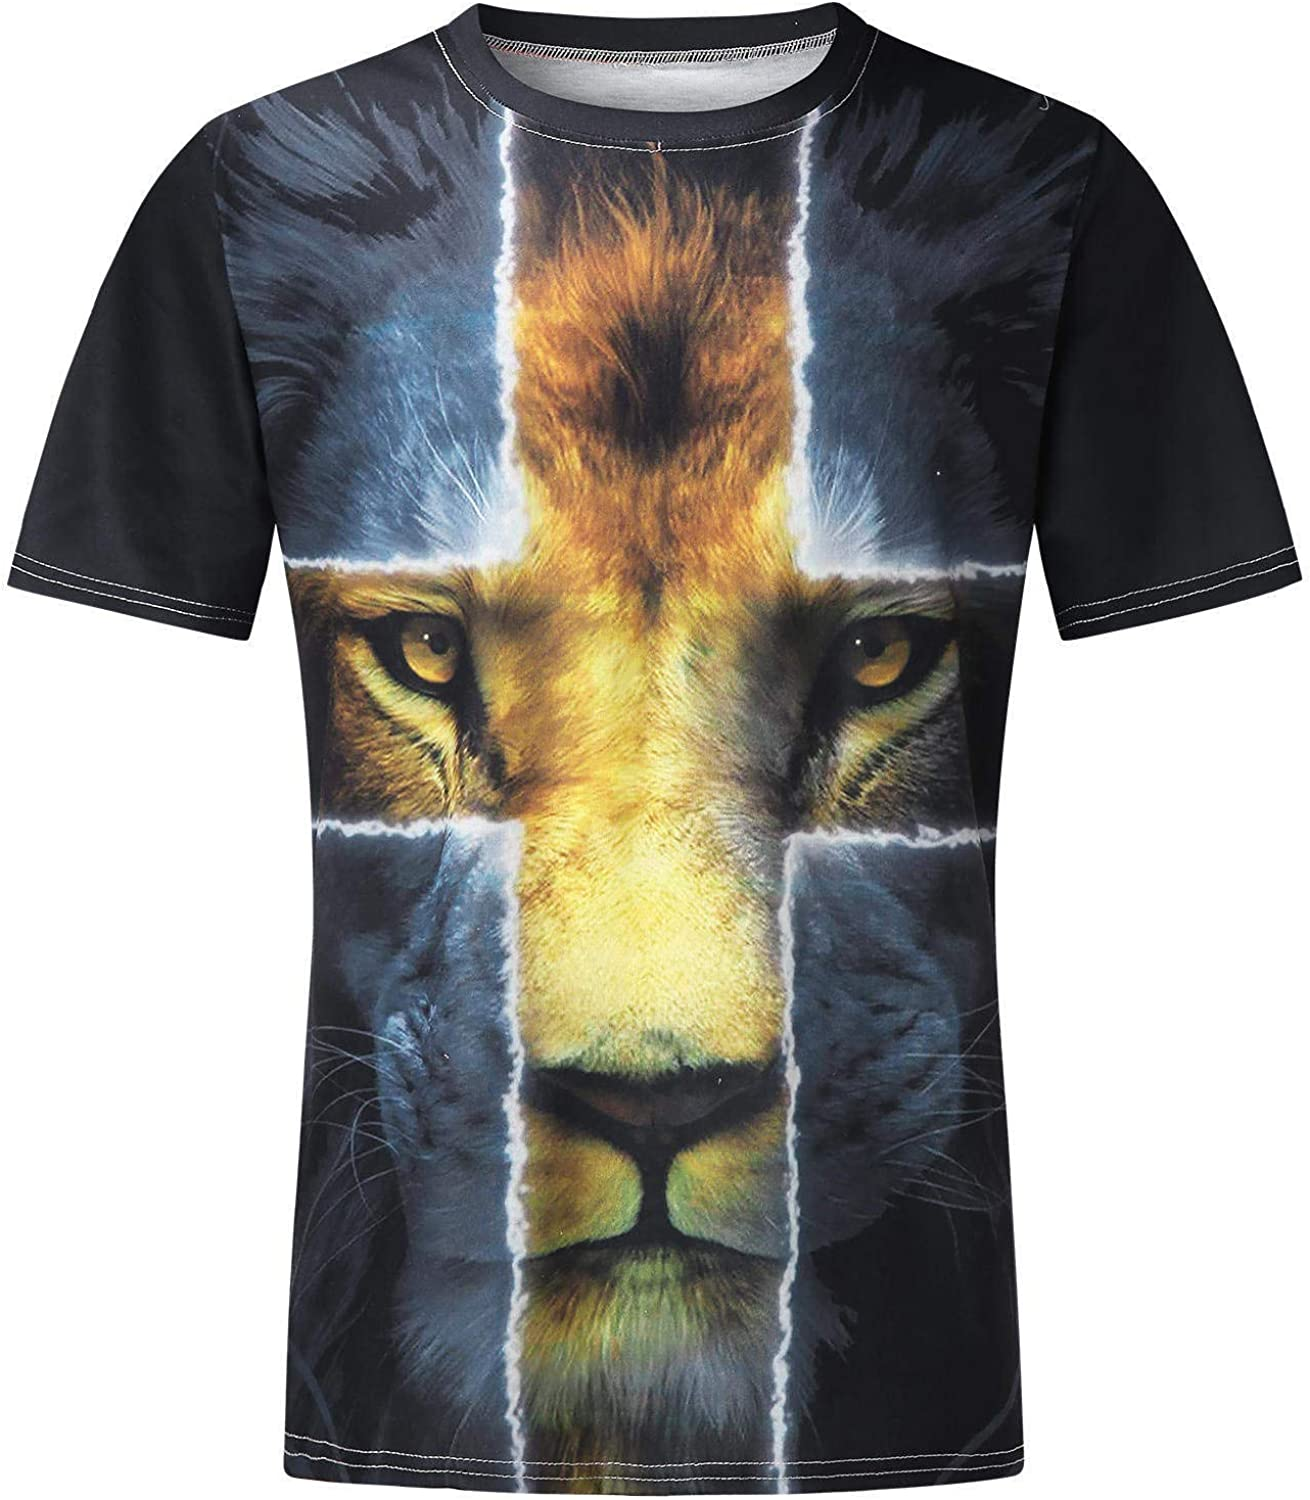 WOCACHI Soldier Short Sleeve T-shirts for Mens, Fall Street Faith Jesus Cross Lion Print Workout Athletic Tee Tops